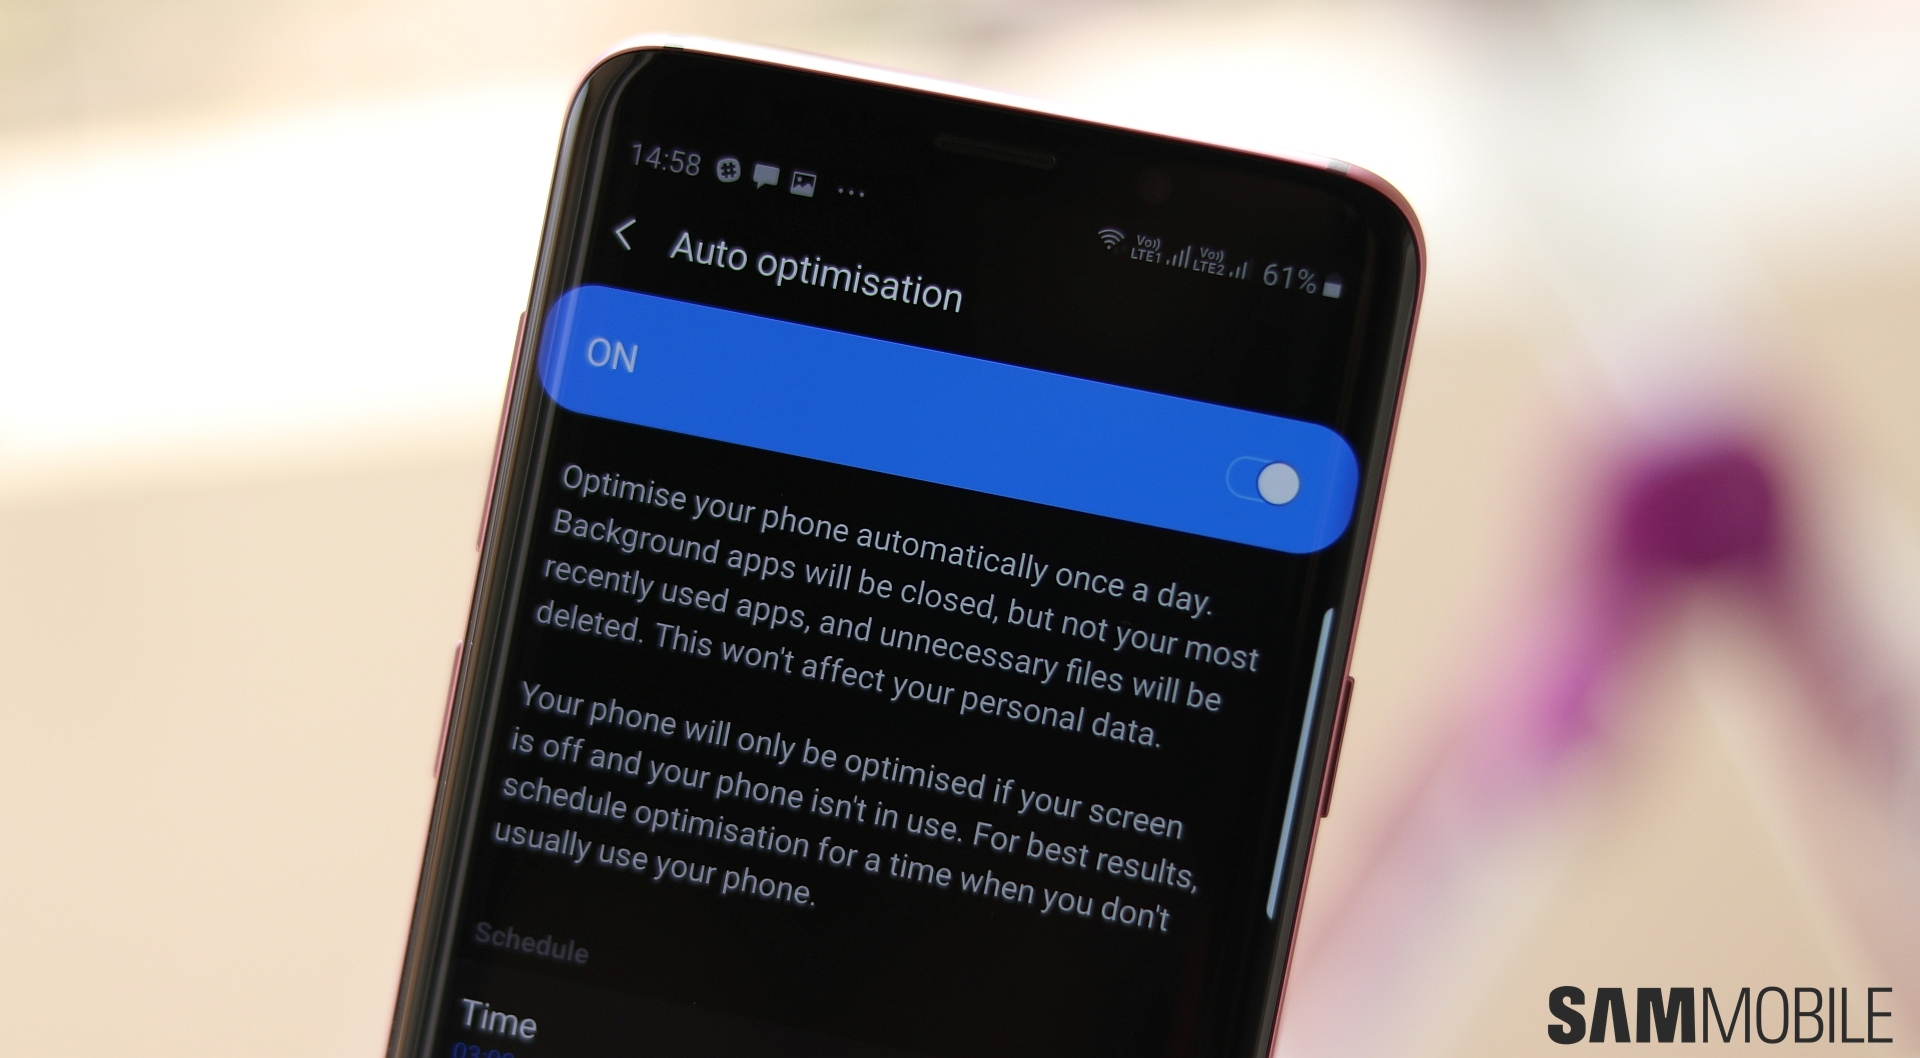 One UI (Android 9) feature focus: Free up memory and storage